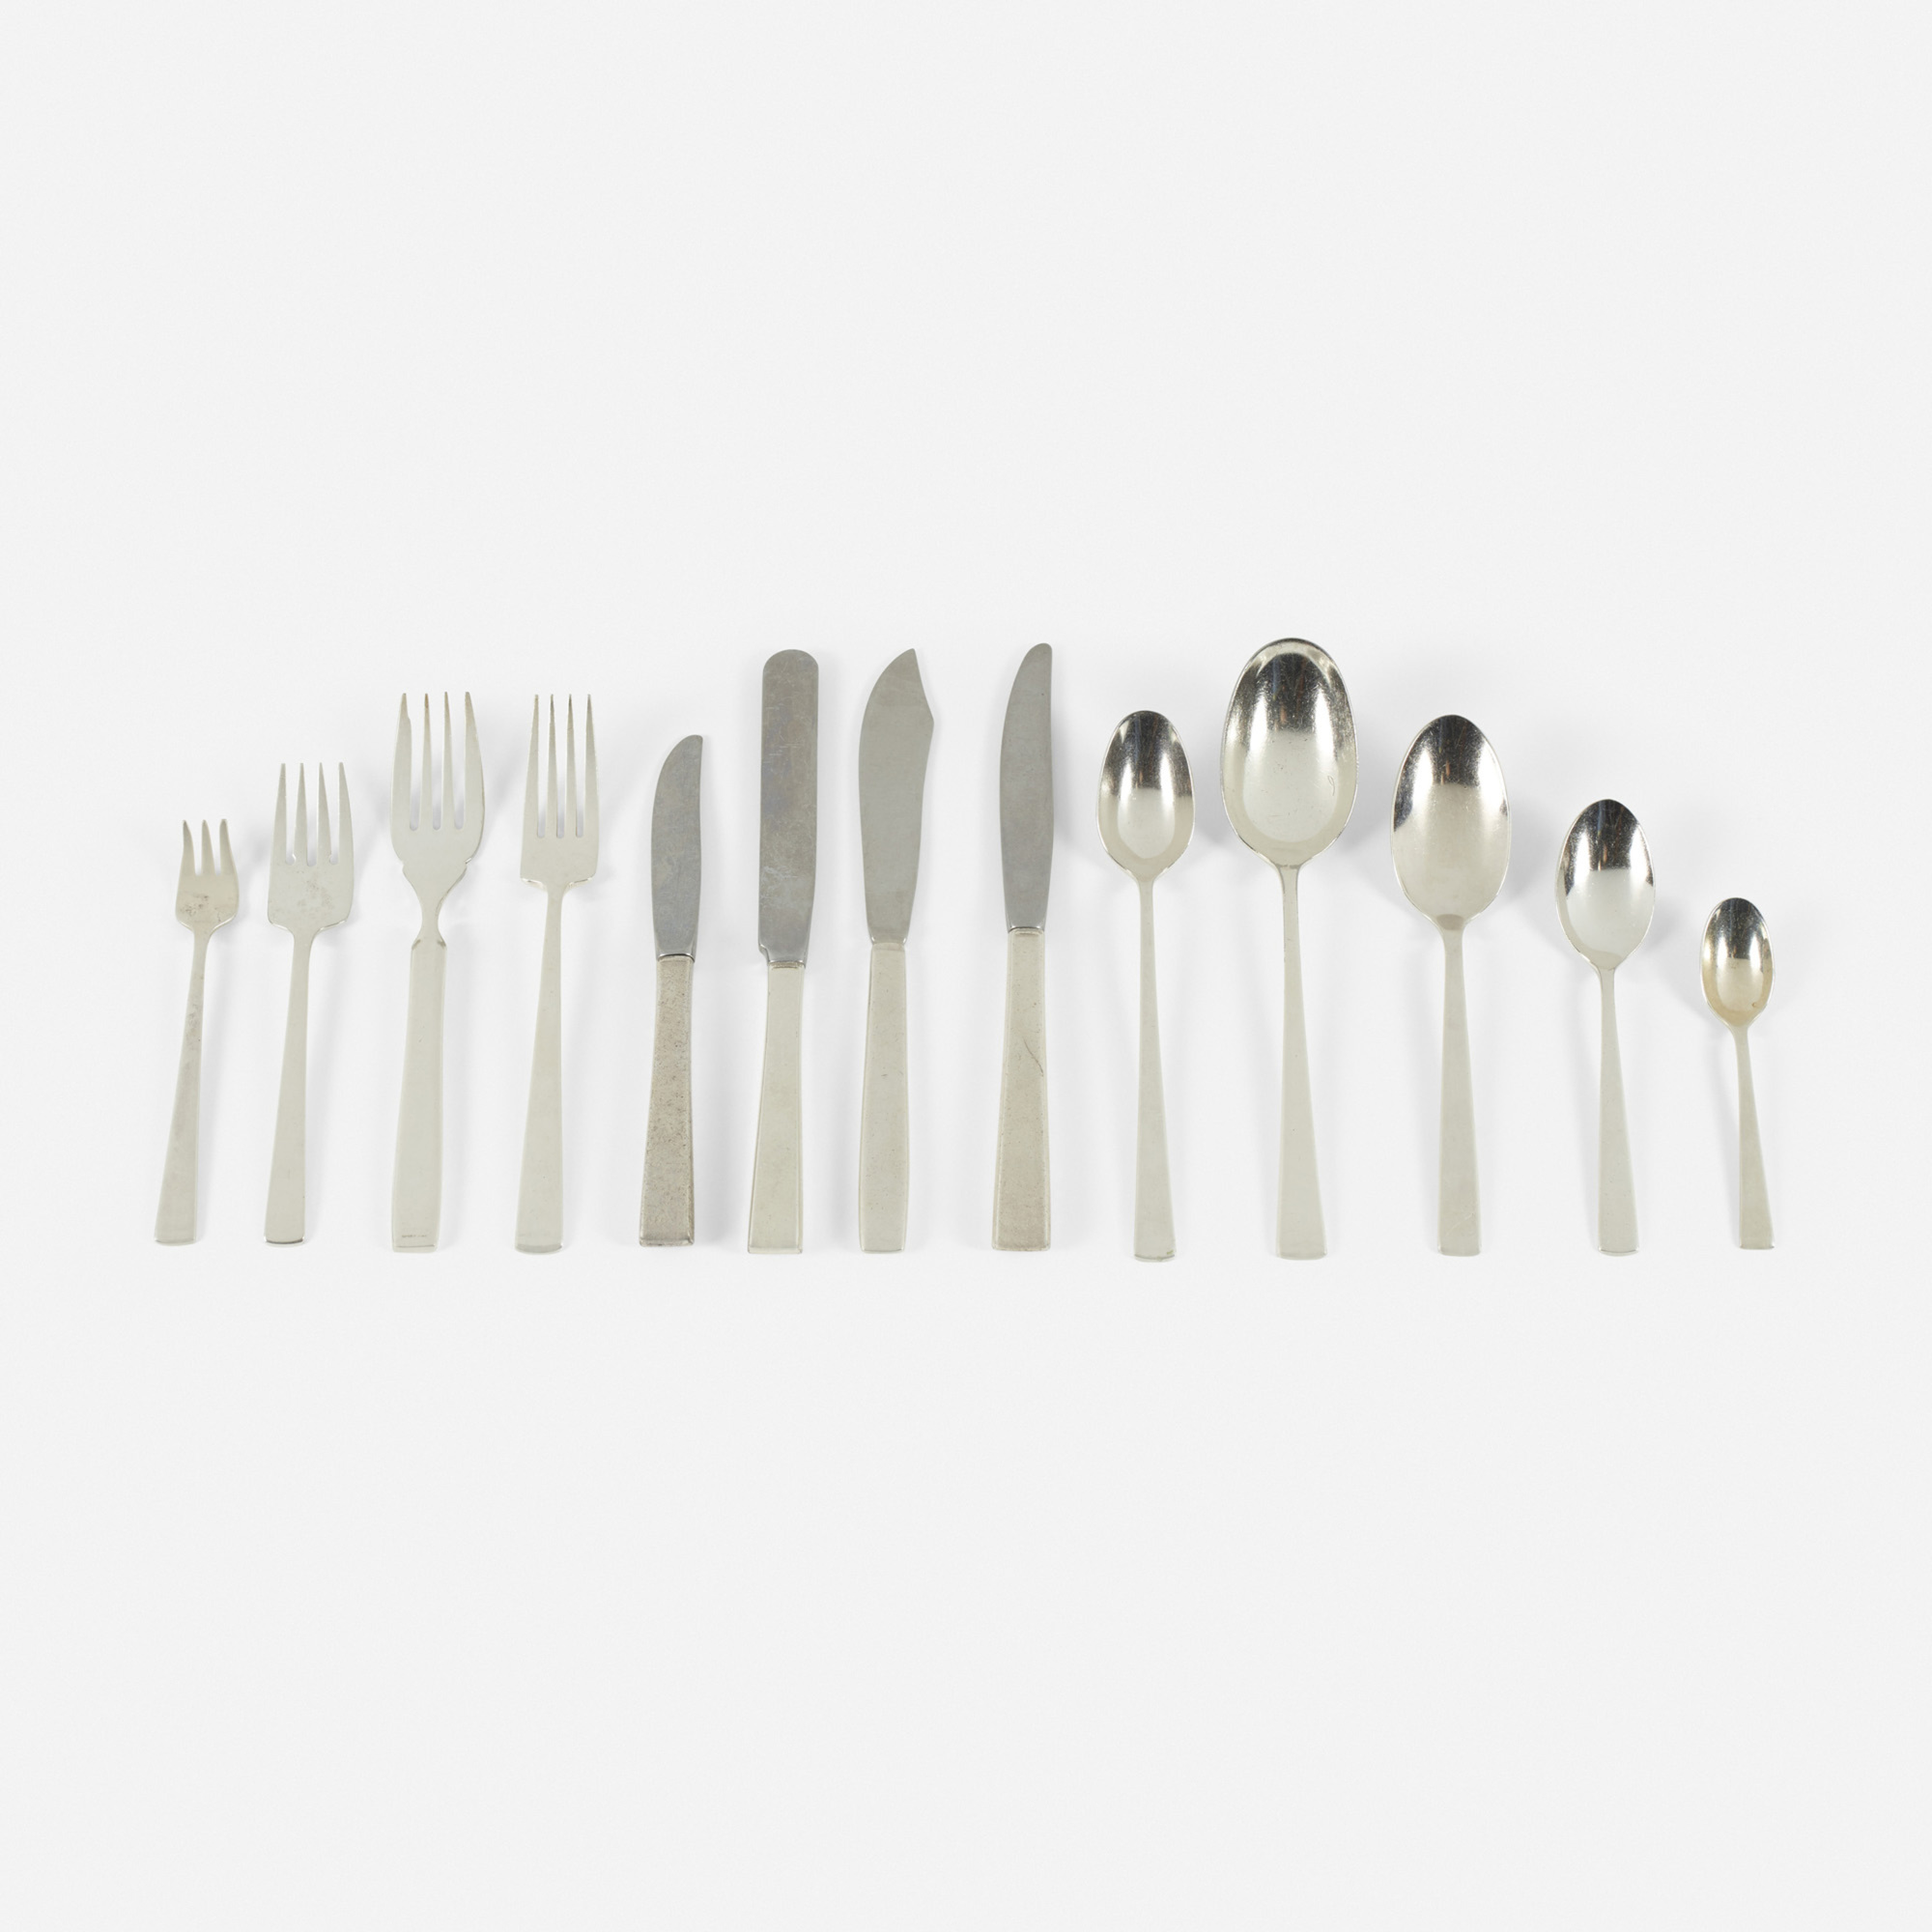 332: Garth and Ada Louise Huxtable / Four Seasons flatware, service for twelve (1 of 1)